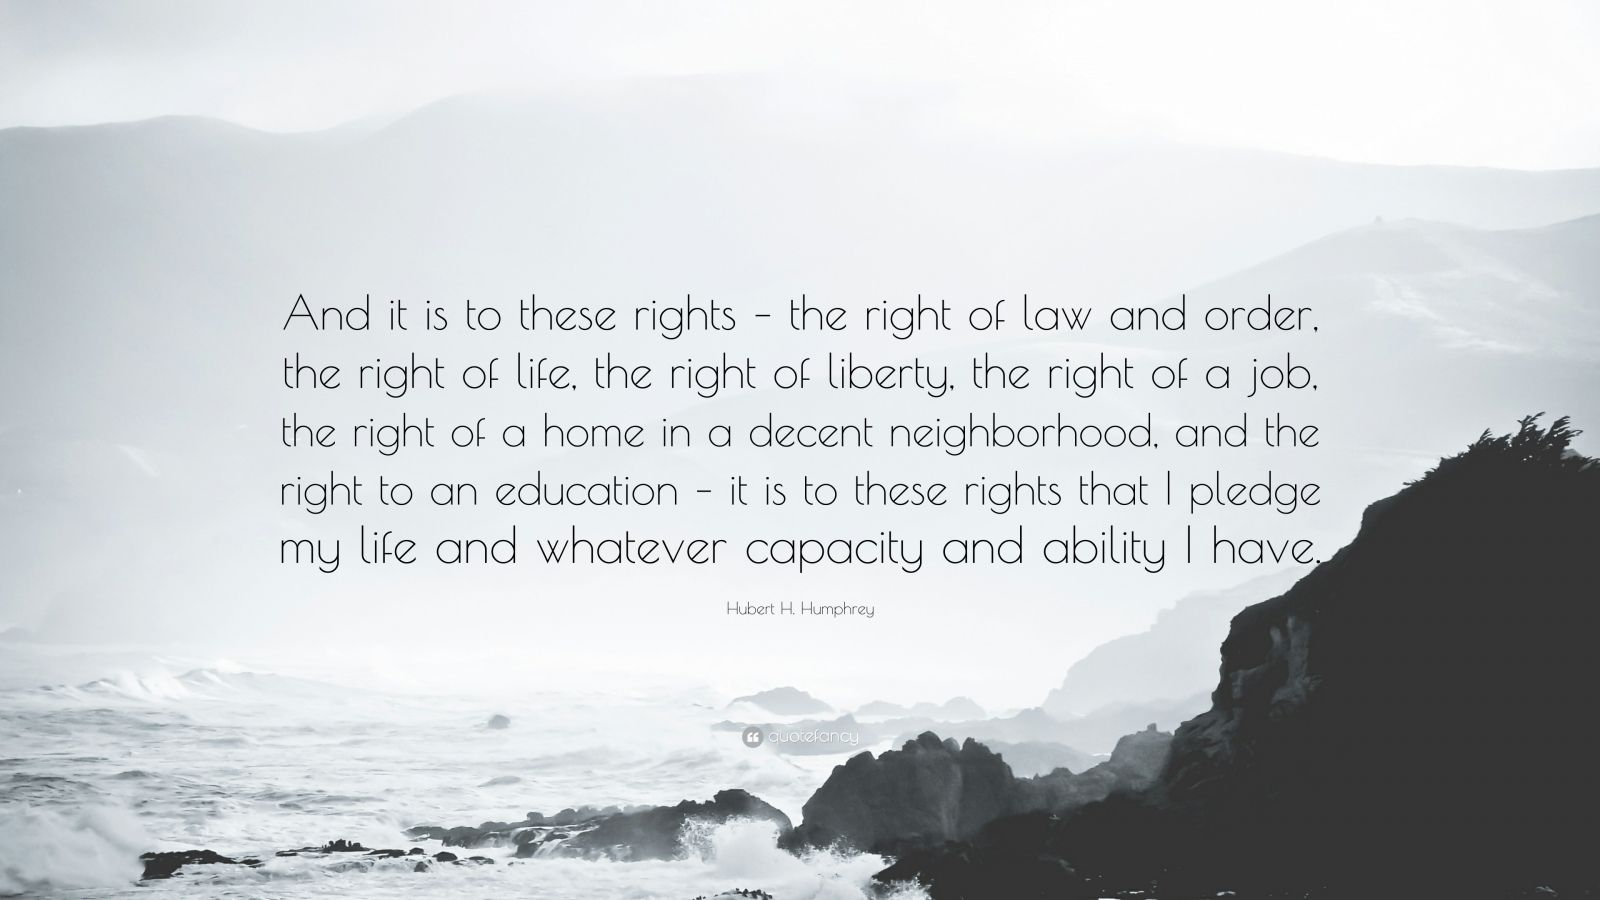 """Hubert H. Humphrey Quote: """"And it is to these rights – the right of law and order, the right of life, the right of liberty, the right of a job, the right of a home in a decent neighborhood, and the right to an education – it is to these rights that I pledge my life and whatever capacity and ability I have."""""""